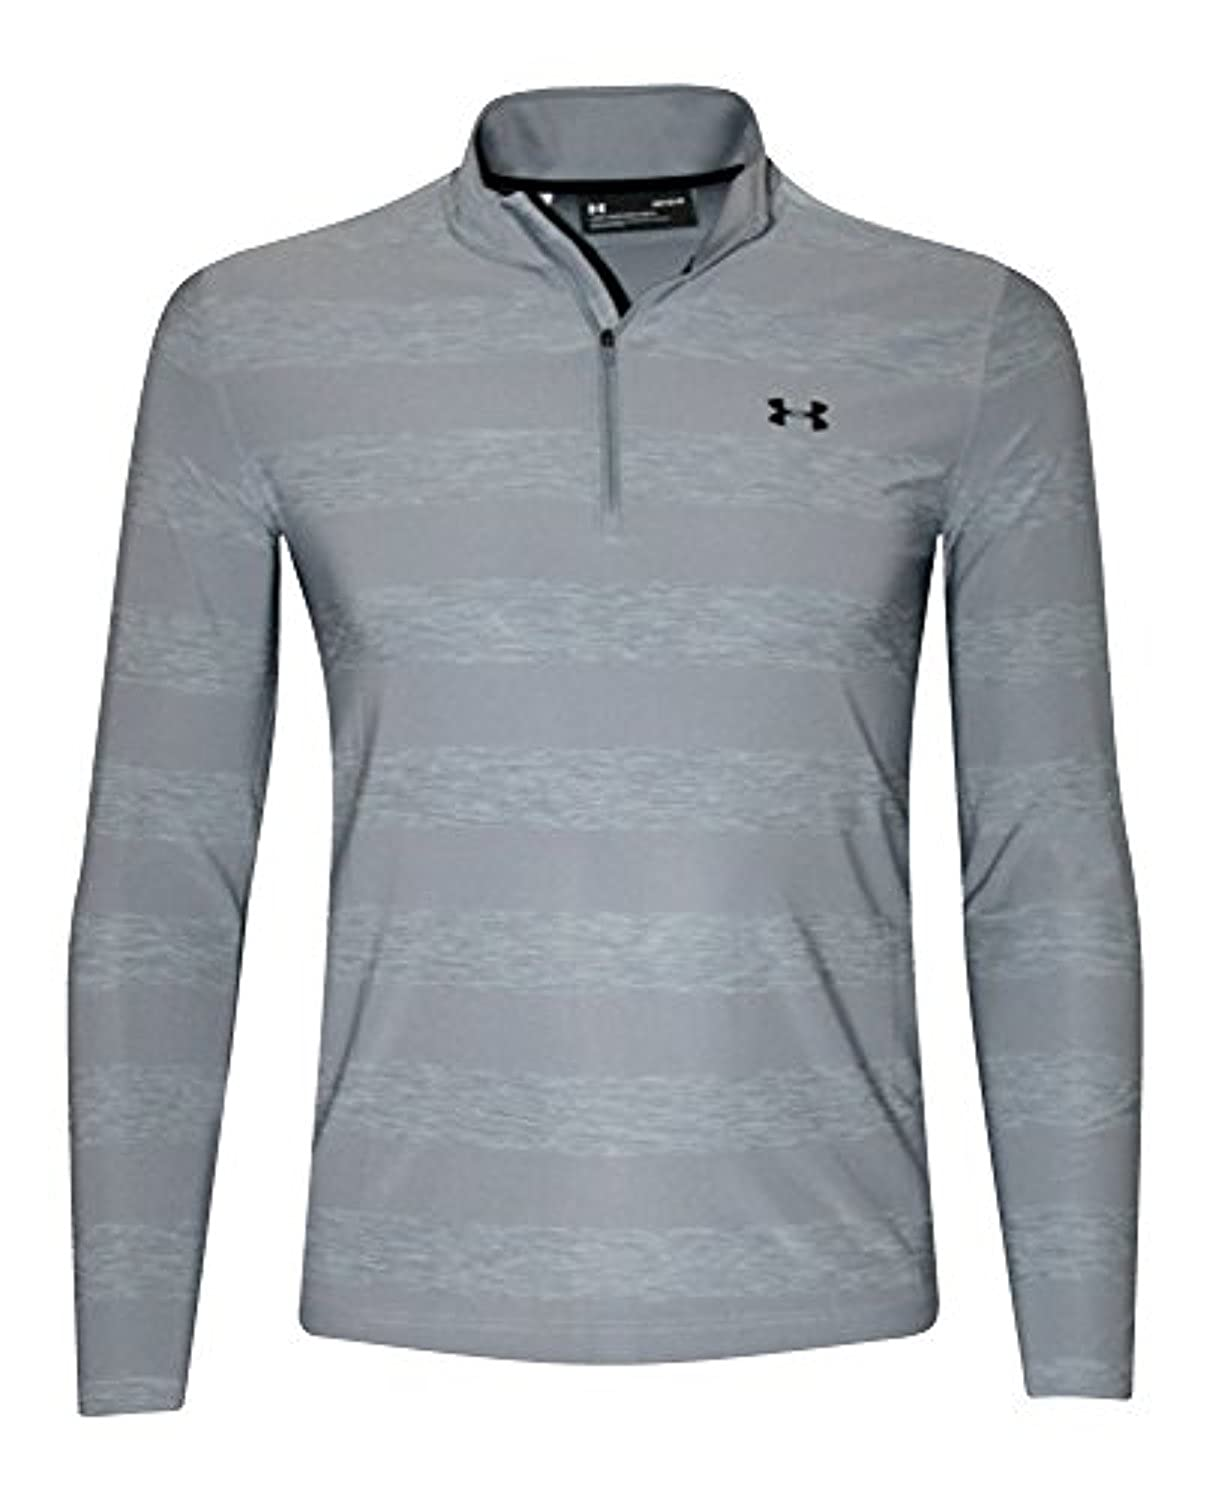 Under Armour Mens Playoff Long Sleeve Polo 14 Zip Shirt Striped